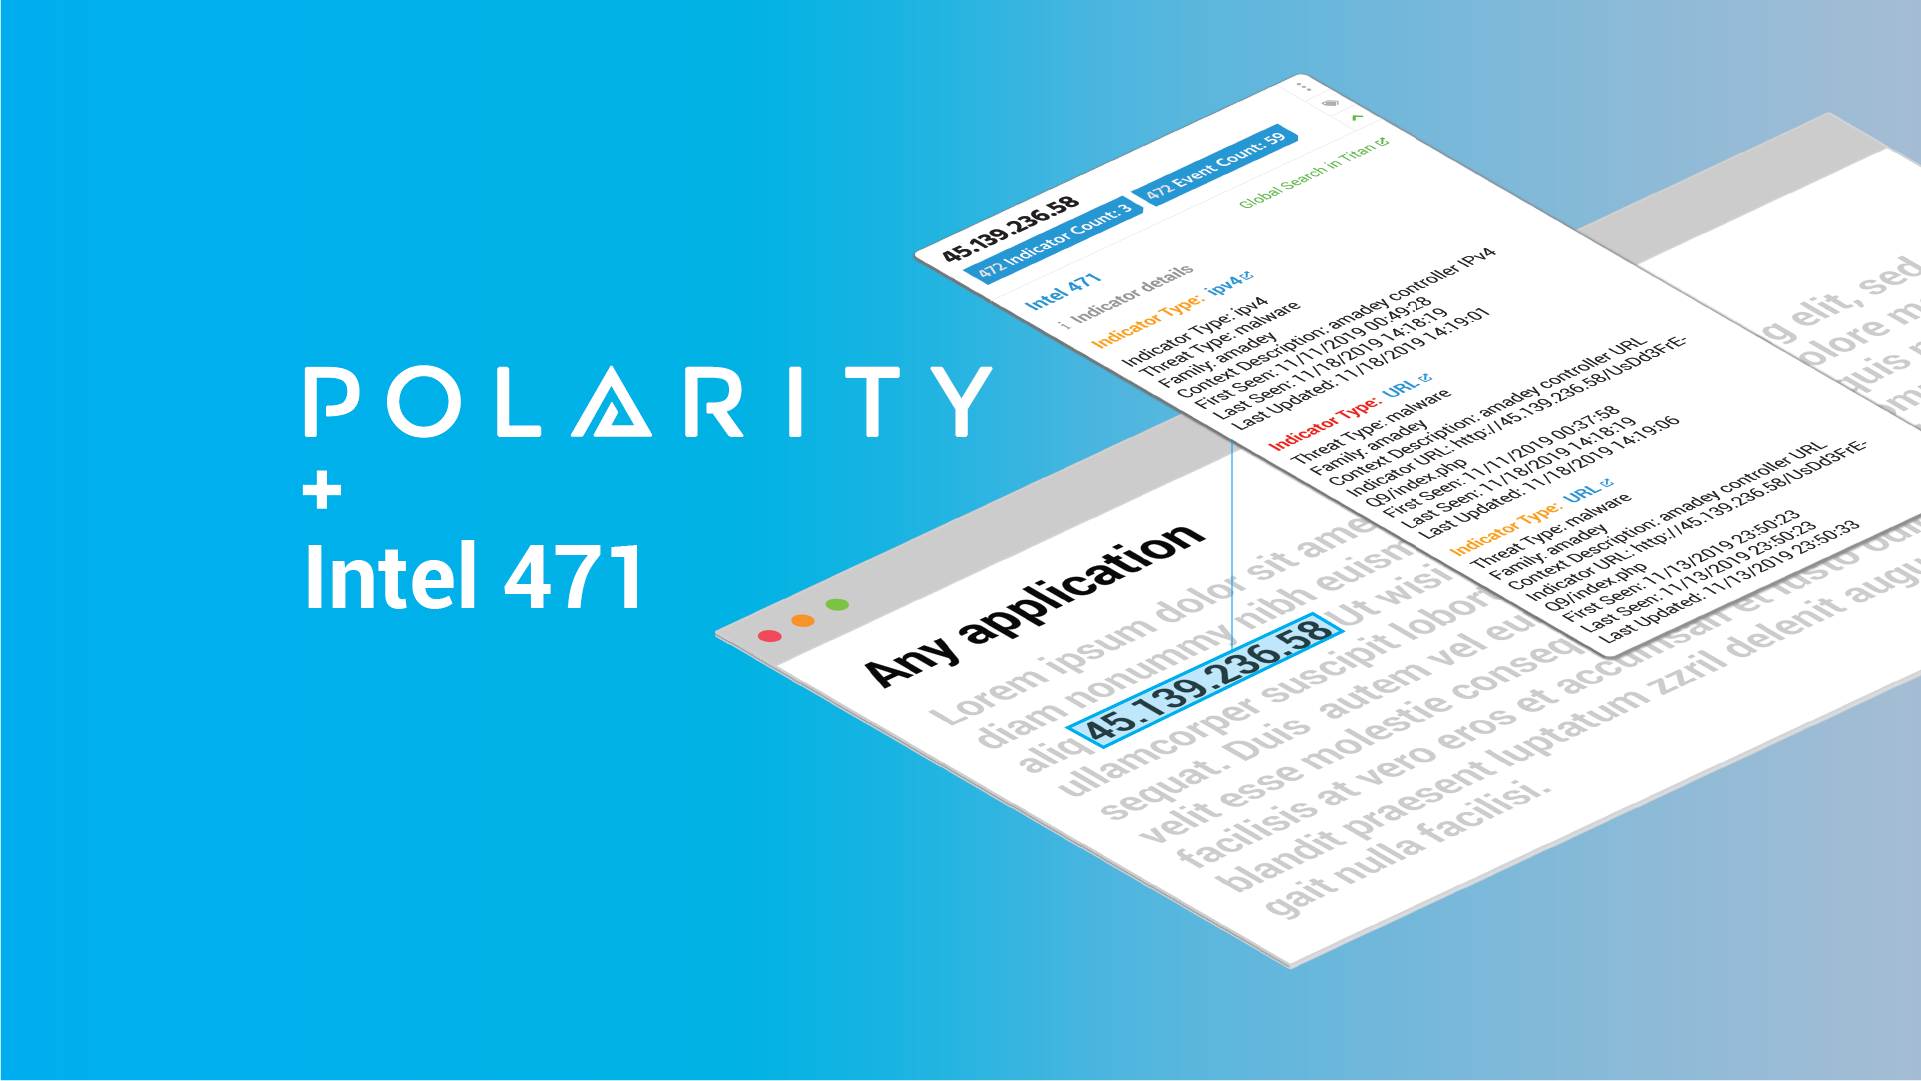 The Polarity-Intel 471 Integration Arms Users with Instant Cybercrime Intelligence cover image